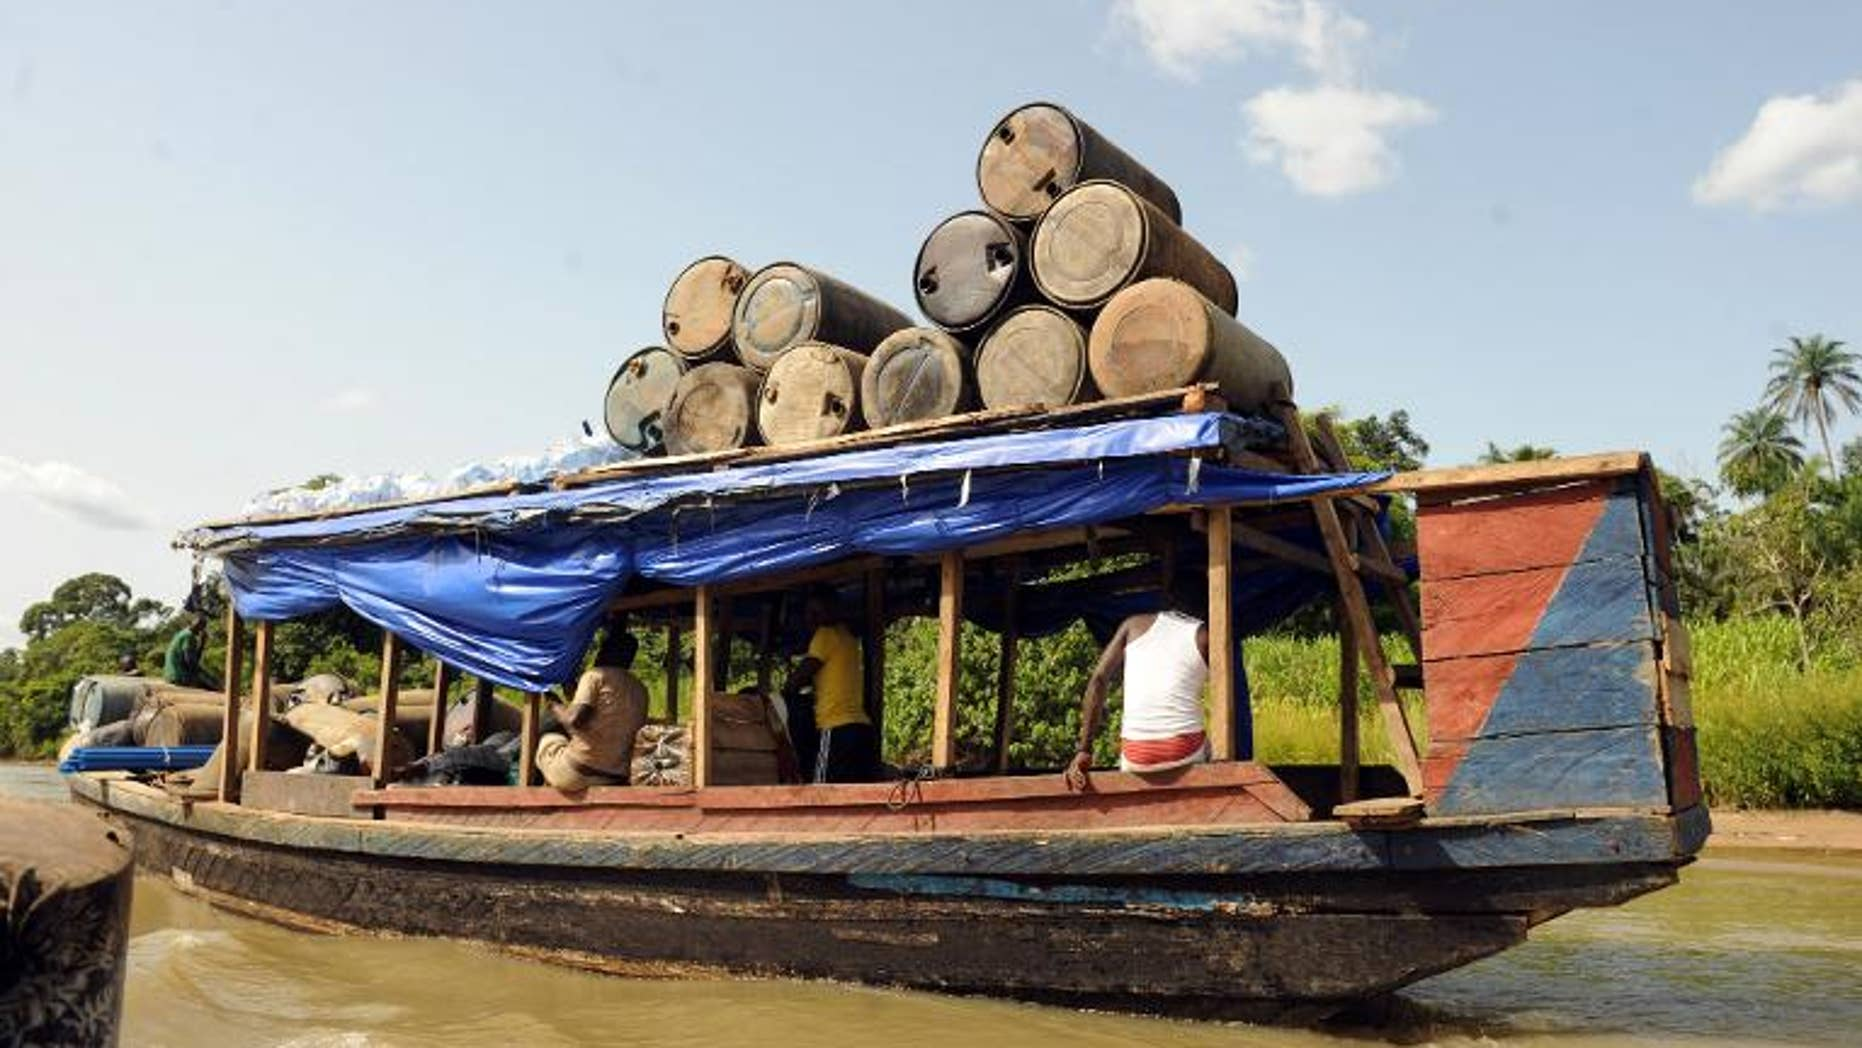 Jerry cans are ferried to the market in Bayelsa State of Niger Delta on April 11, 2013